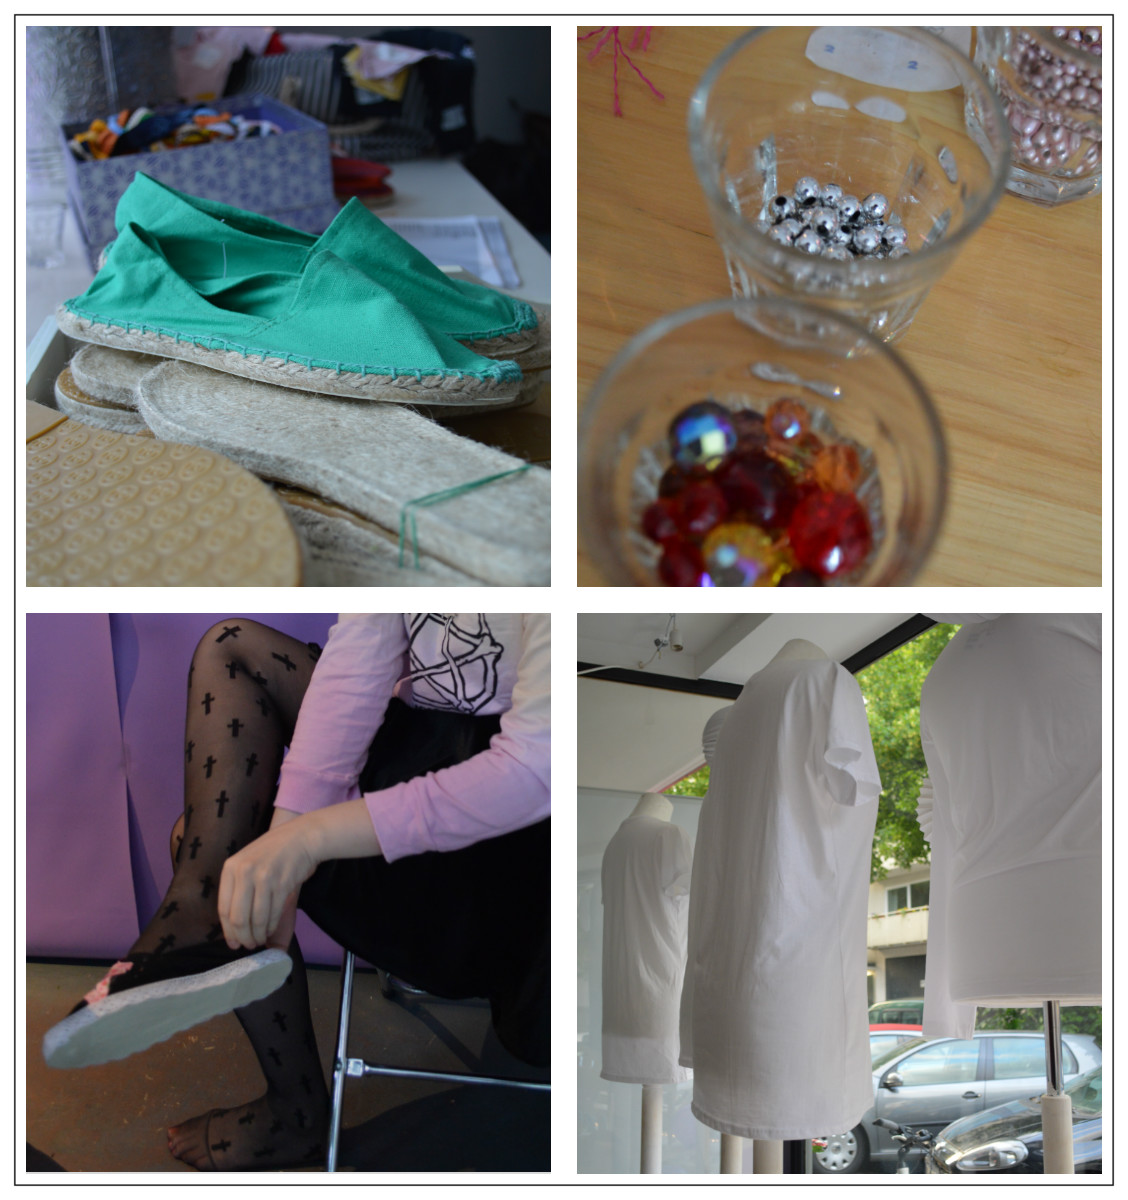 Spadrillos-Atelier-Hamburg-Mariposa-Fashion-blog-20